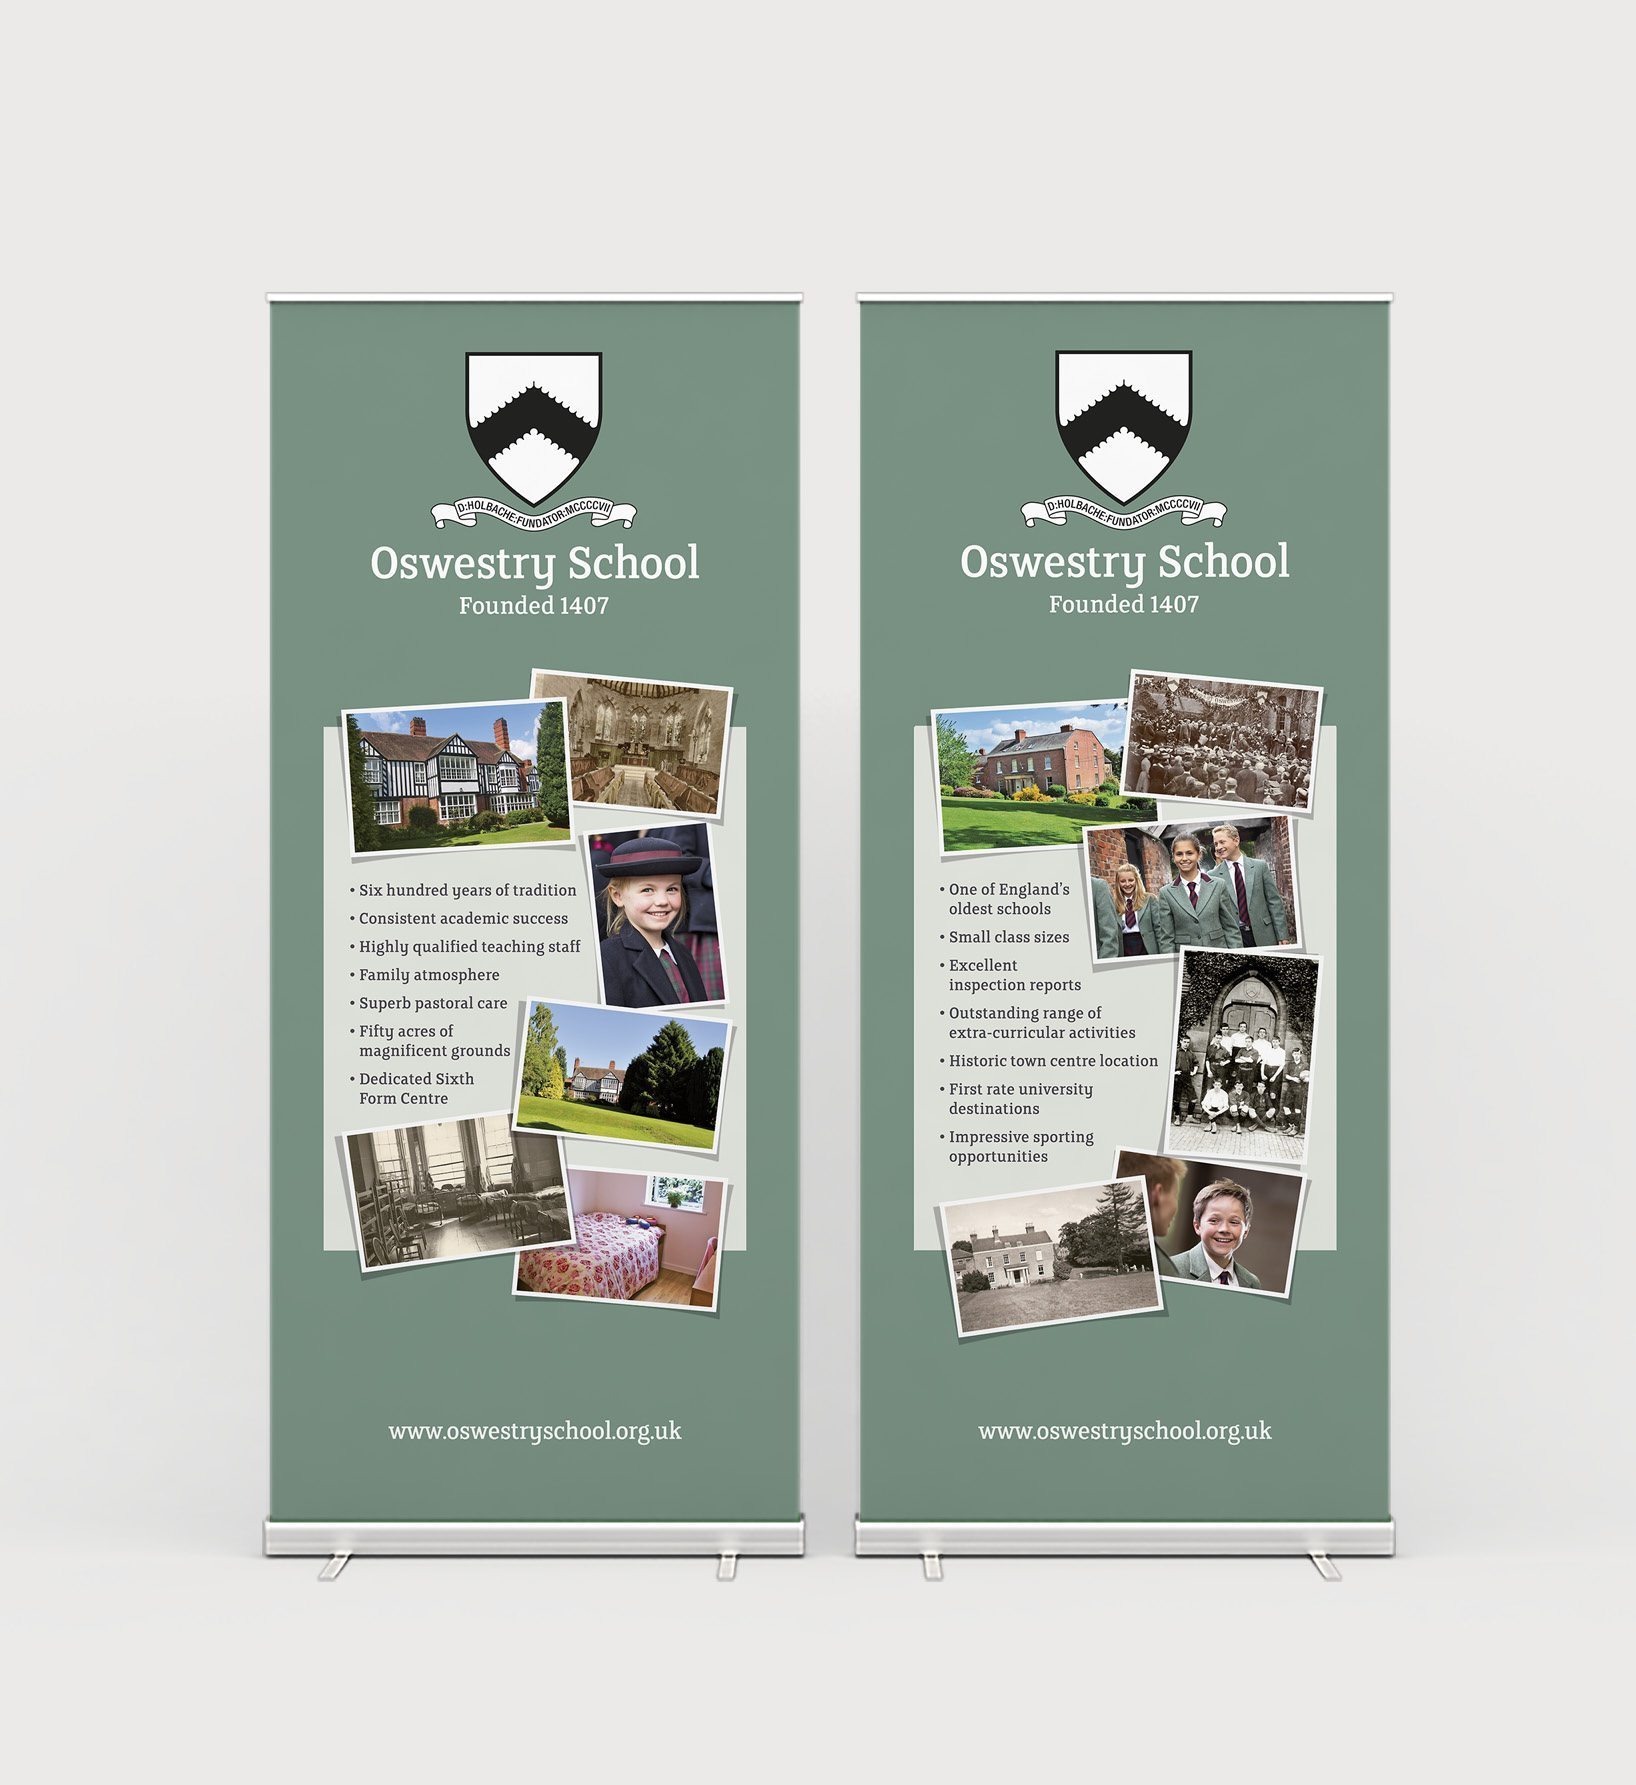 Owestery School roll up banner displays